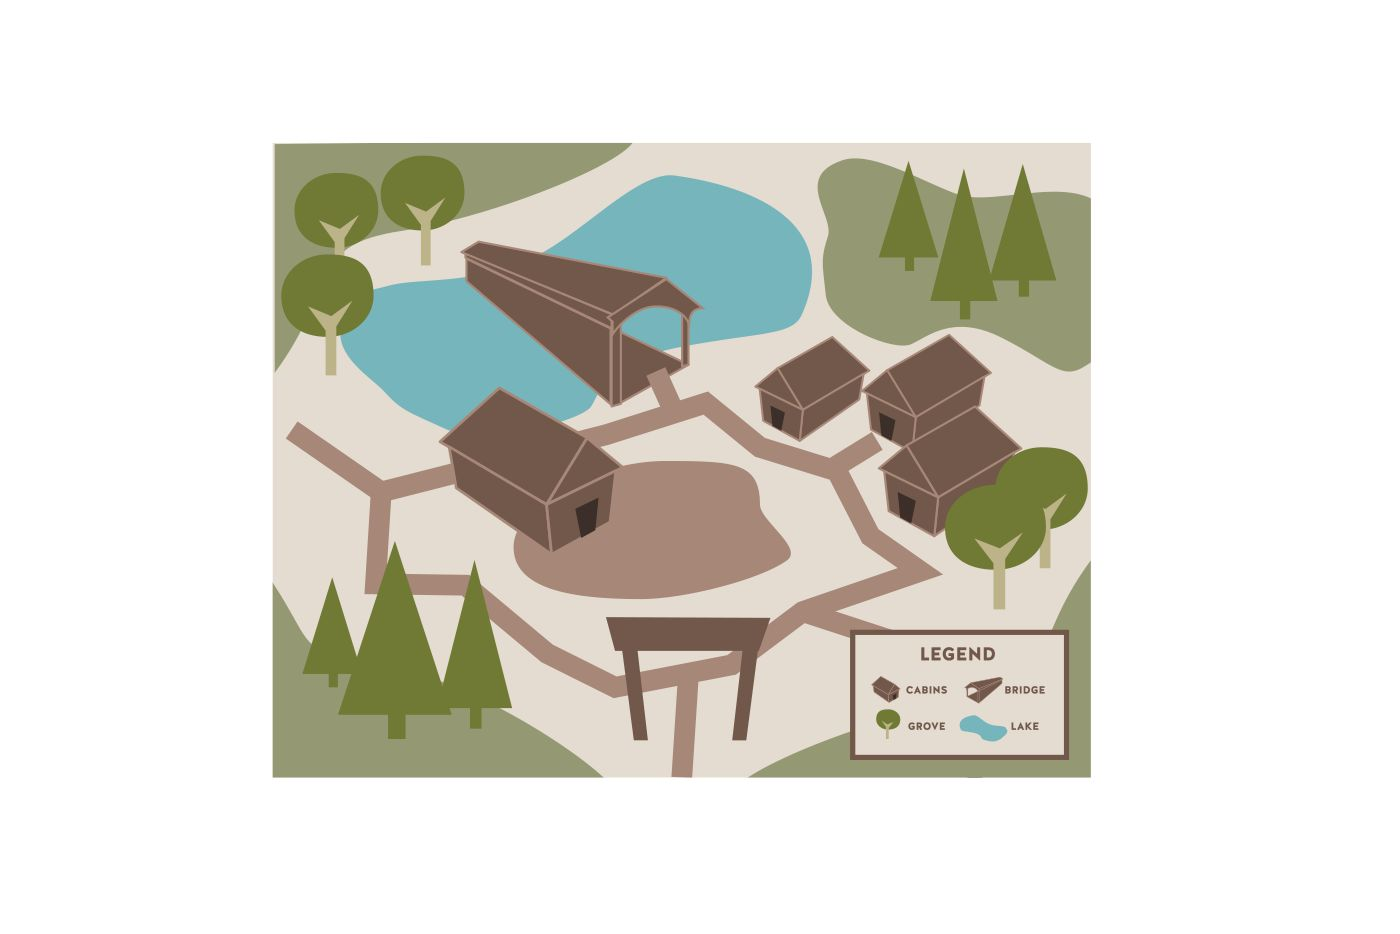 camp map graphic